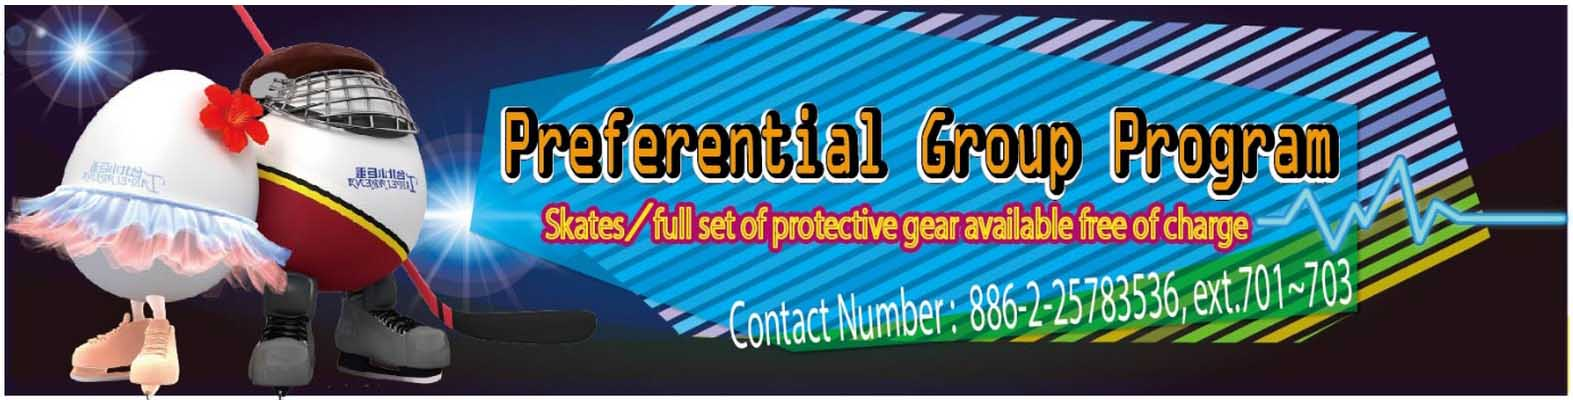 Preferential Group Program